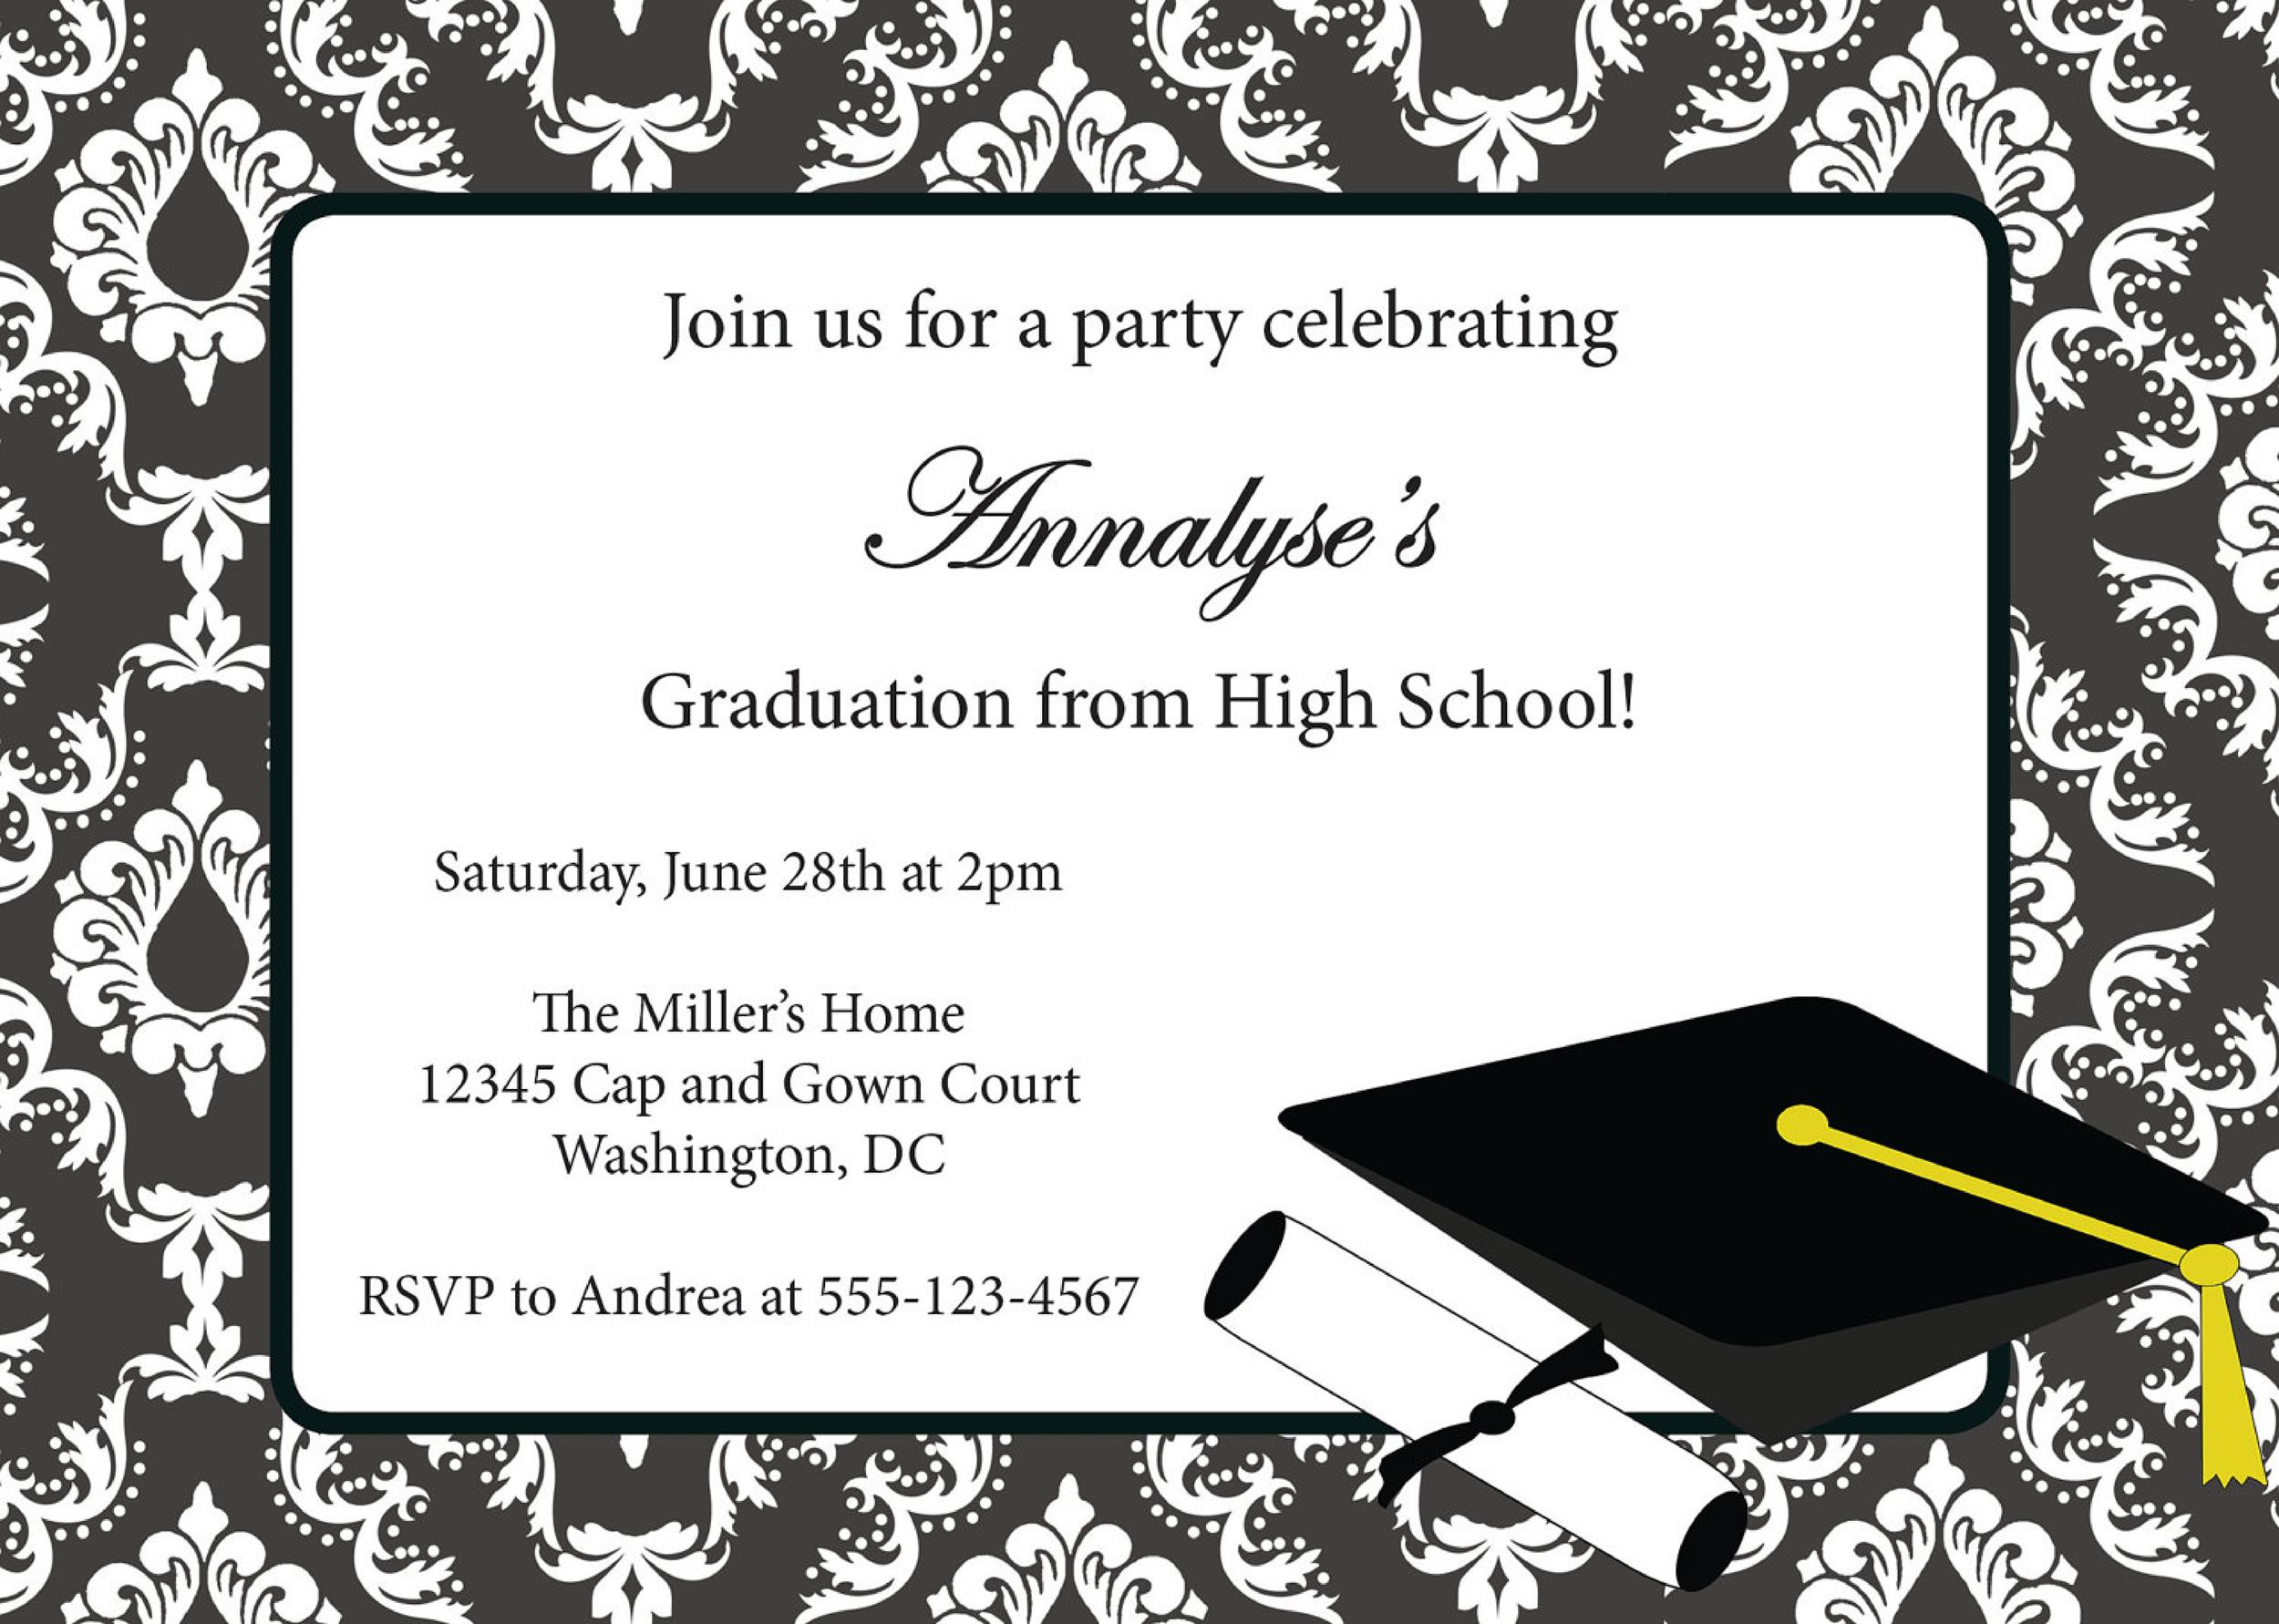 graduation invitation templates free printable - Onwebioinnovate - free printable invitations graduation